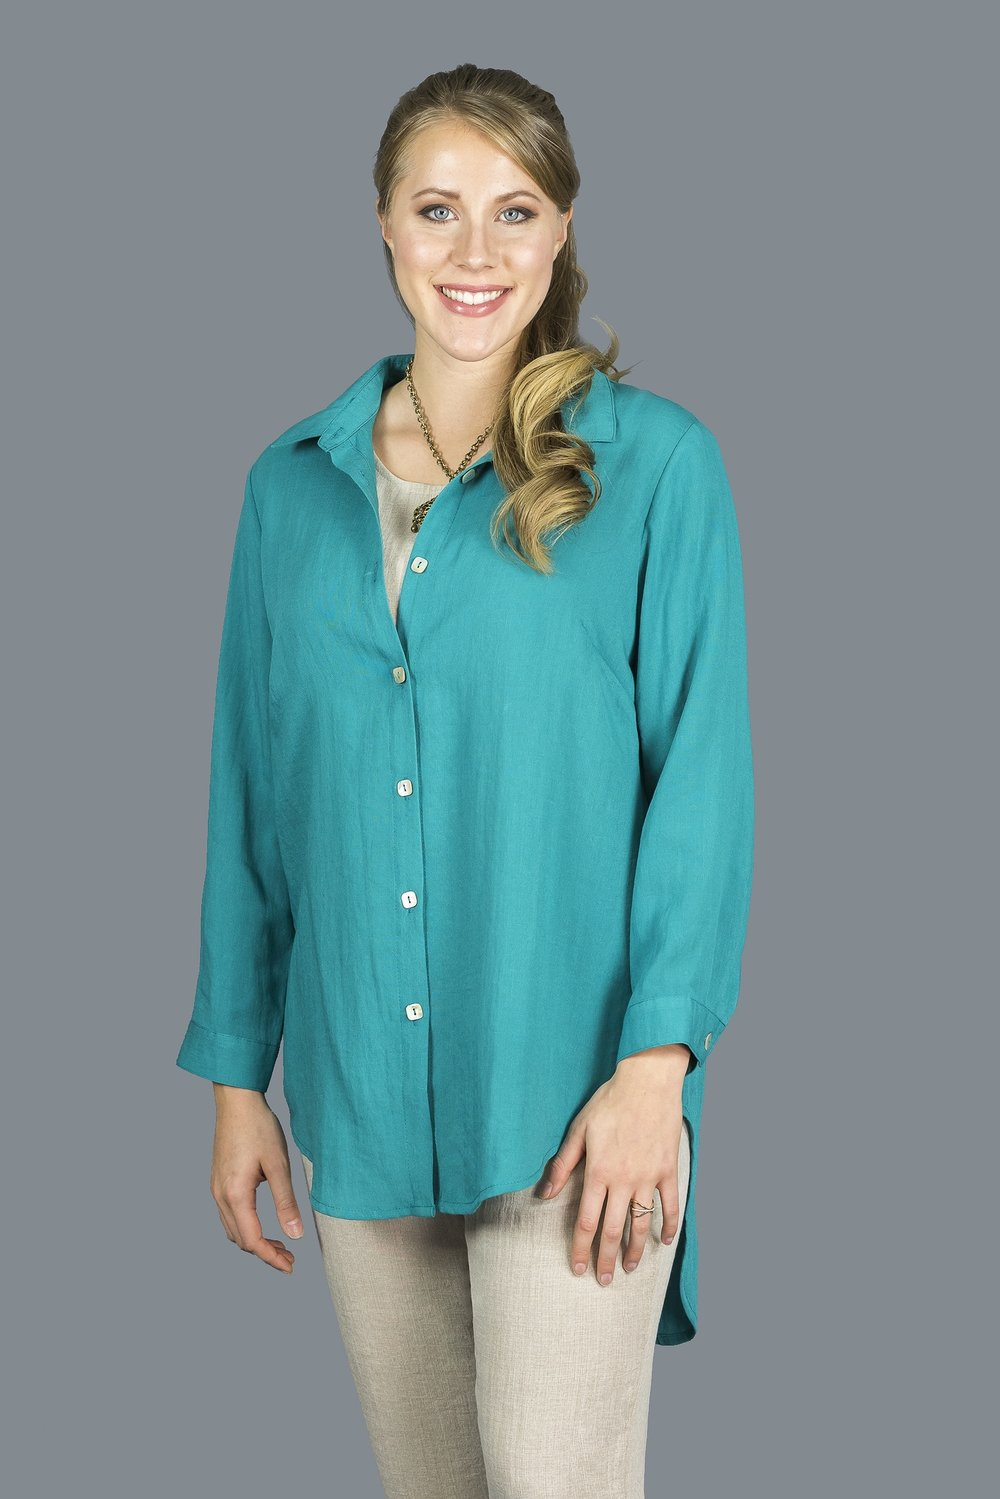 AA200 - Crossing Tails Blouse    CL5915 - Topaz